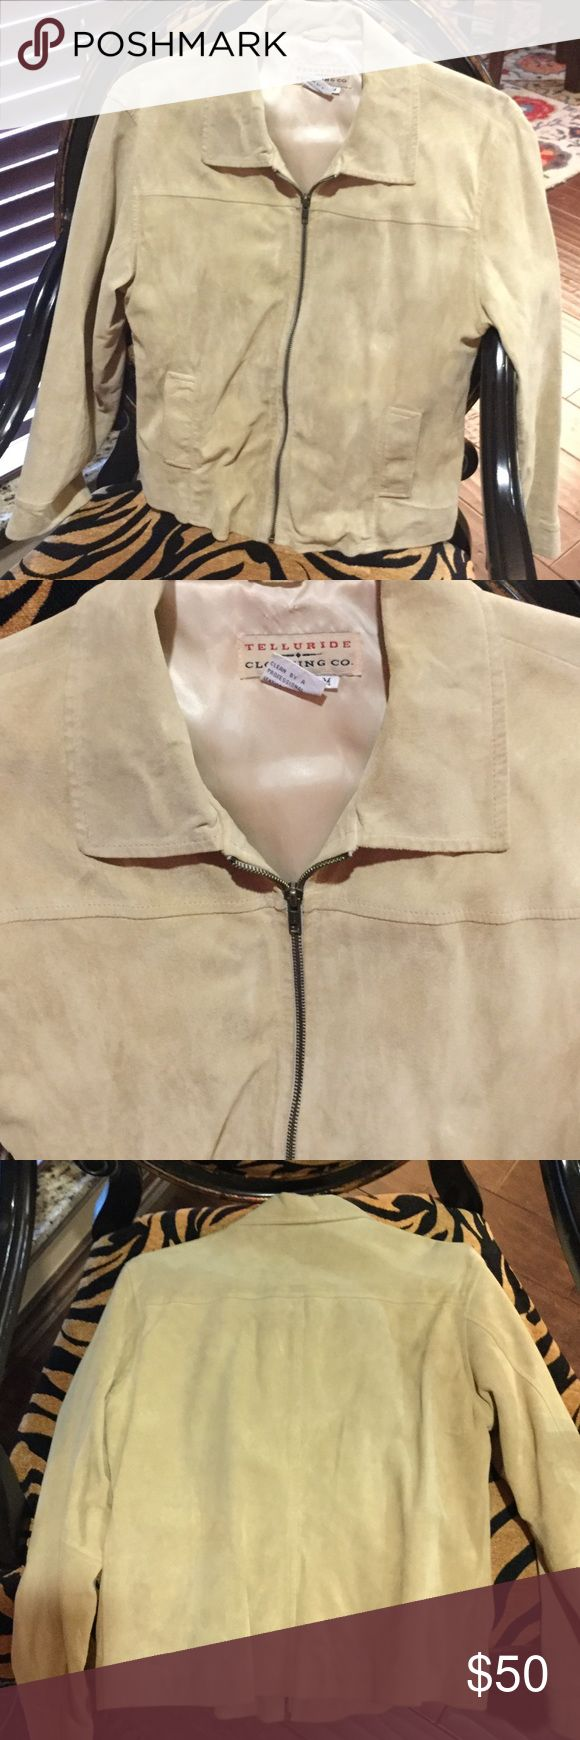 Leather suede jacket A classy jacket in 100% genuine leather. Suede is Beige color, has pockets in front, zips up, lining made of 50/50 nylon and acetate. Telluride Clothing Company Jackets & Coats